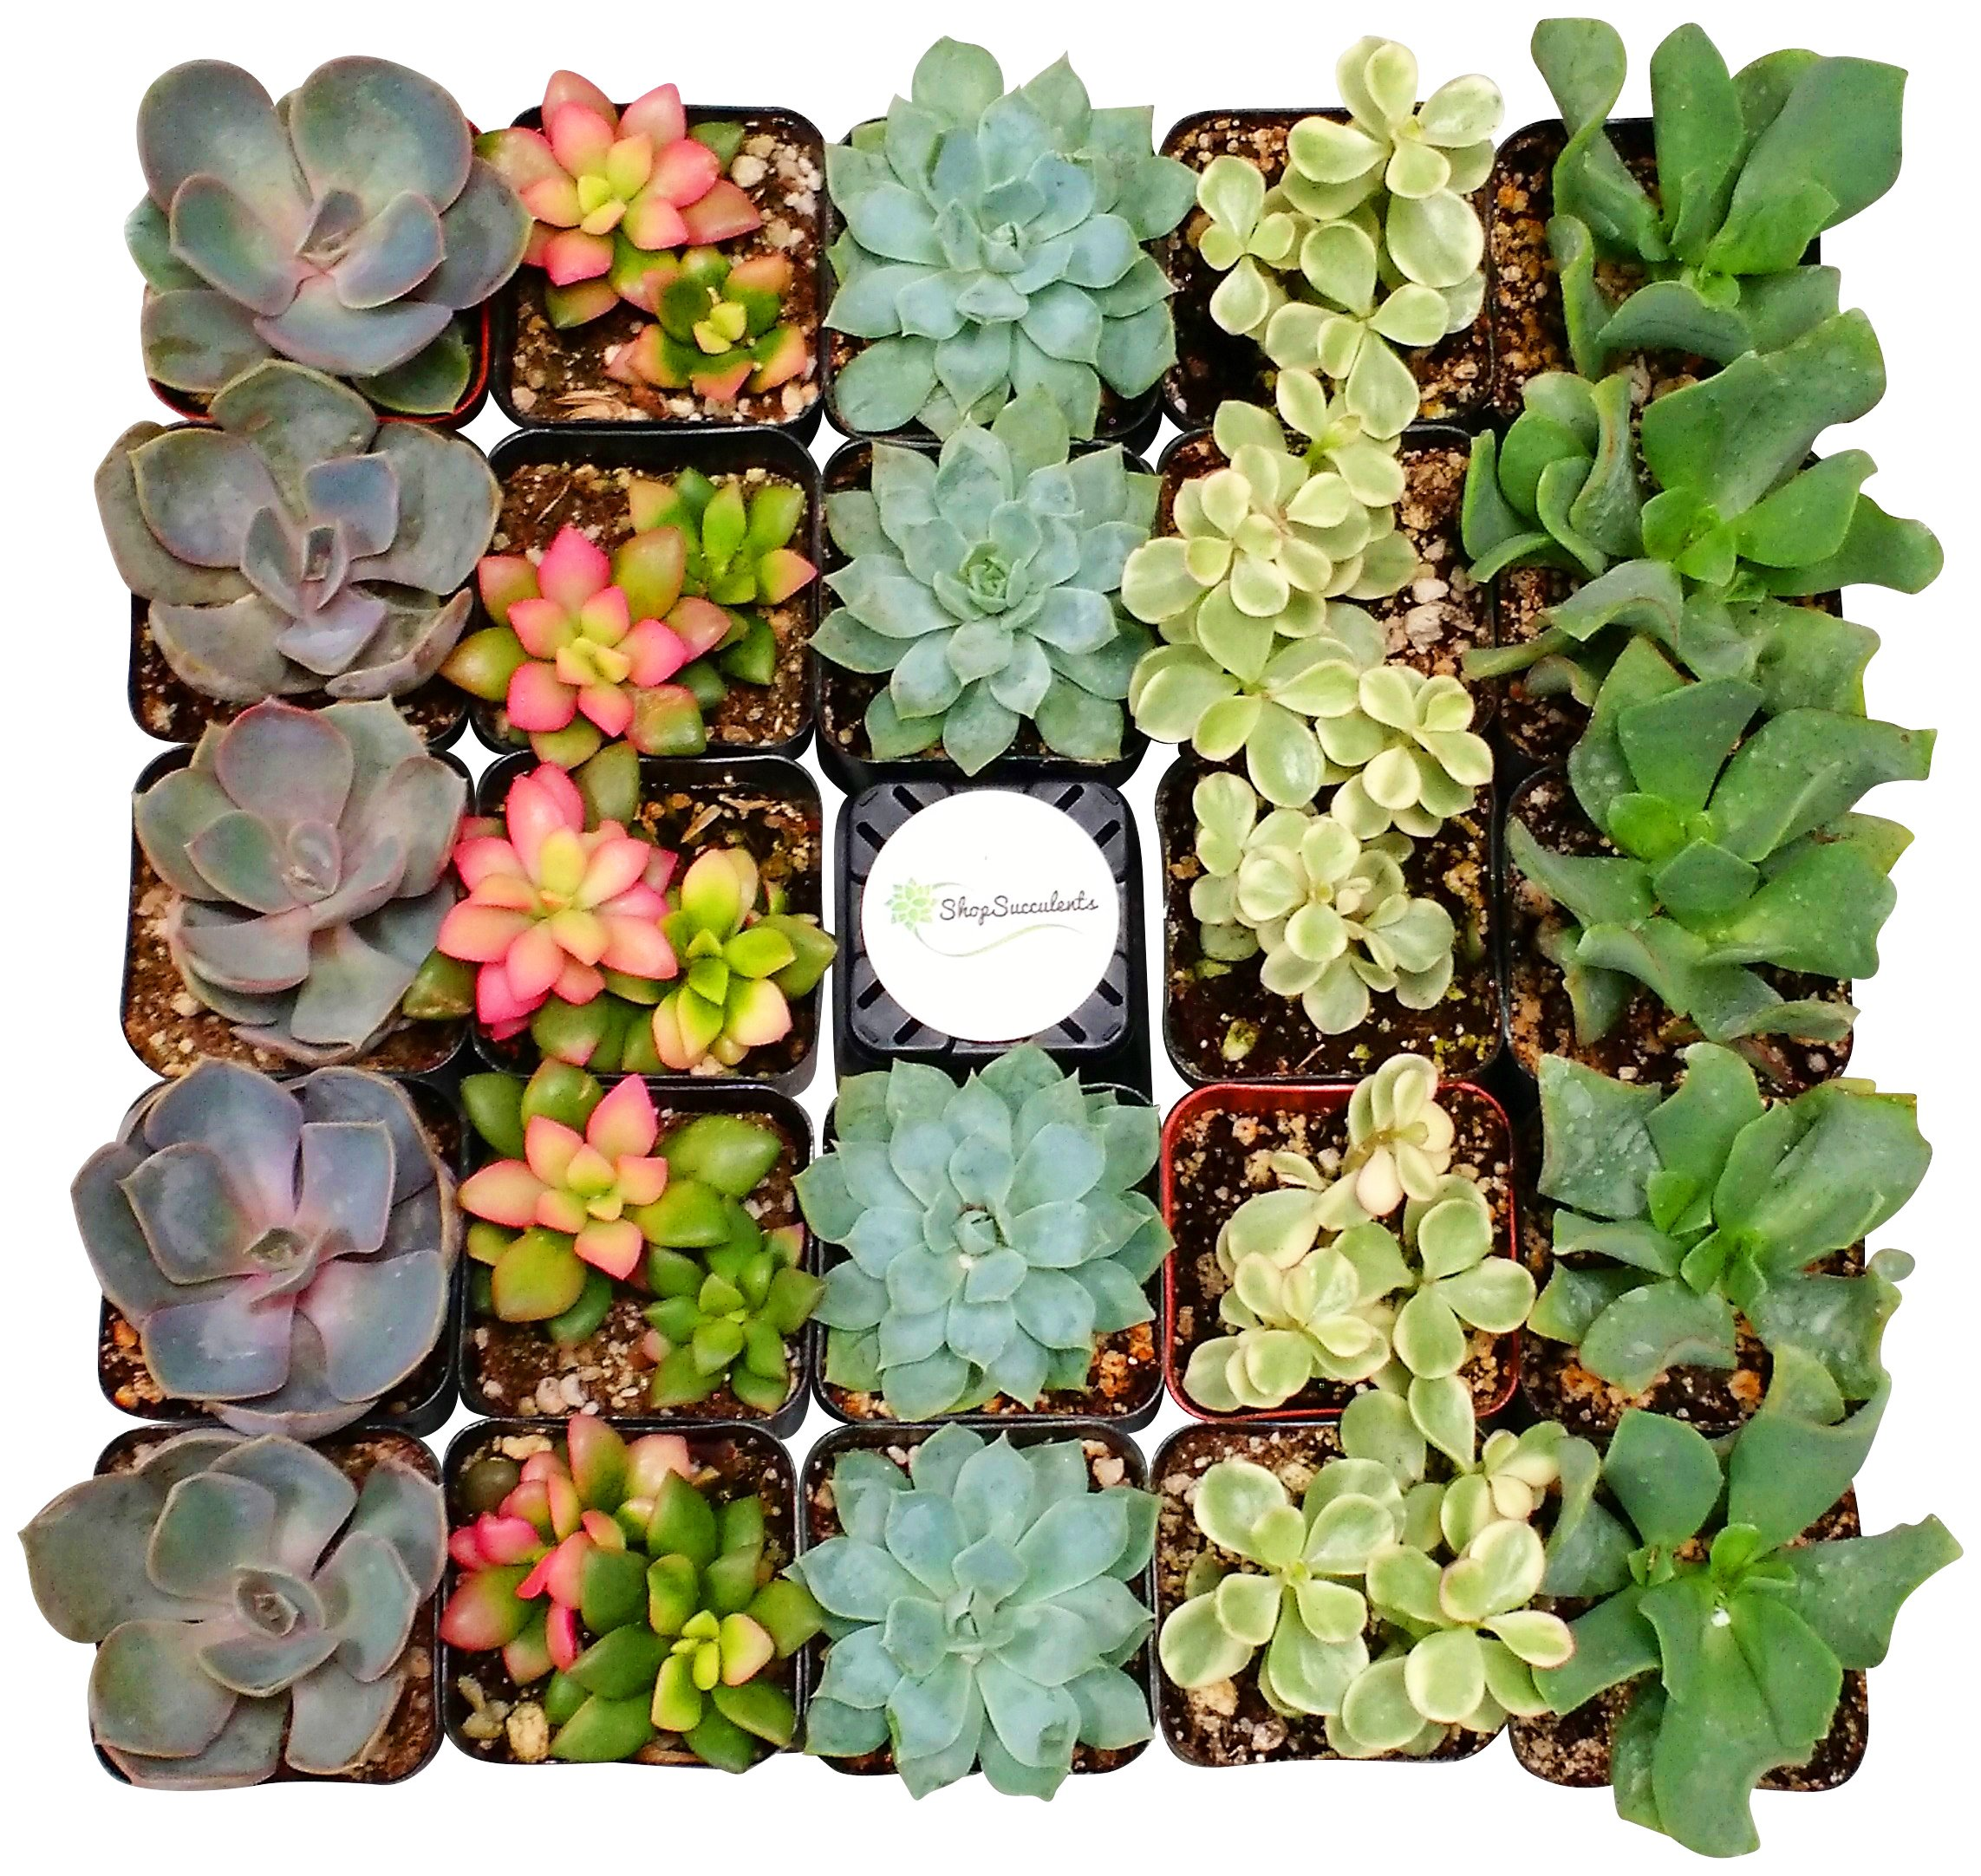 Shop Succulents Premium Pastel Succulent (Collection of 100) by Shop Succulents